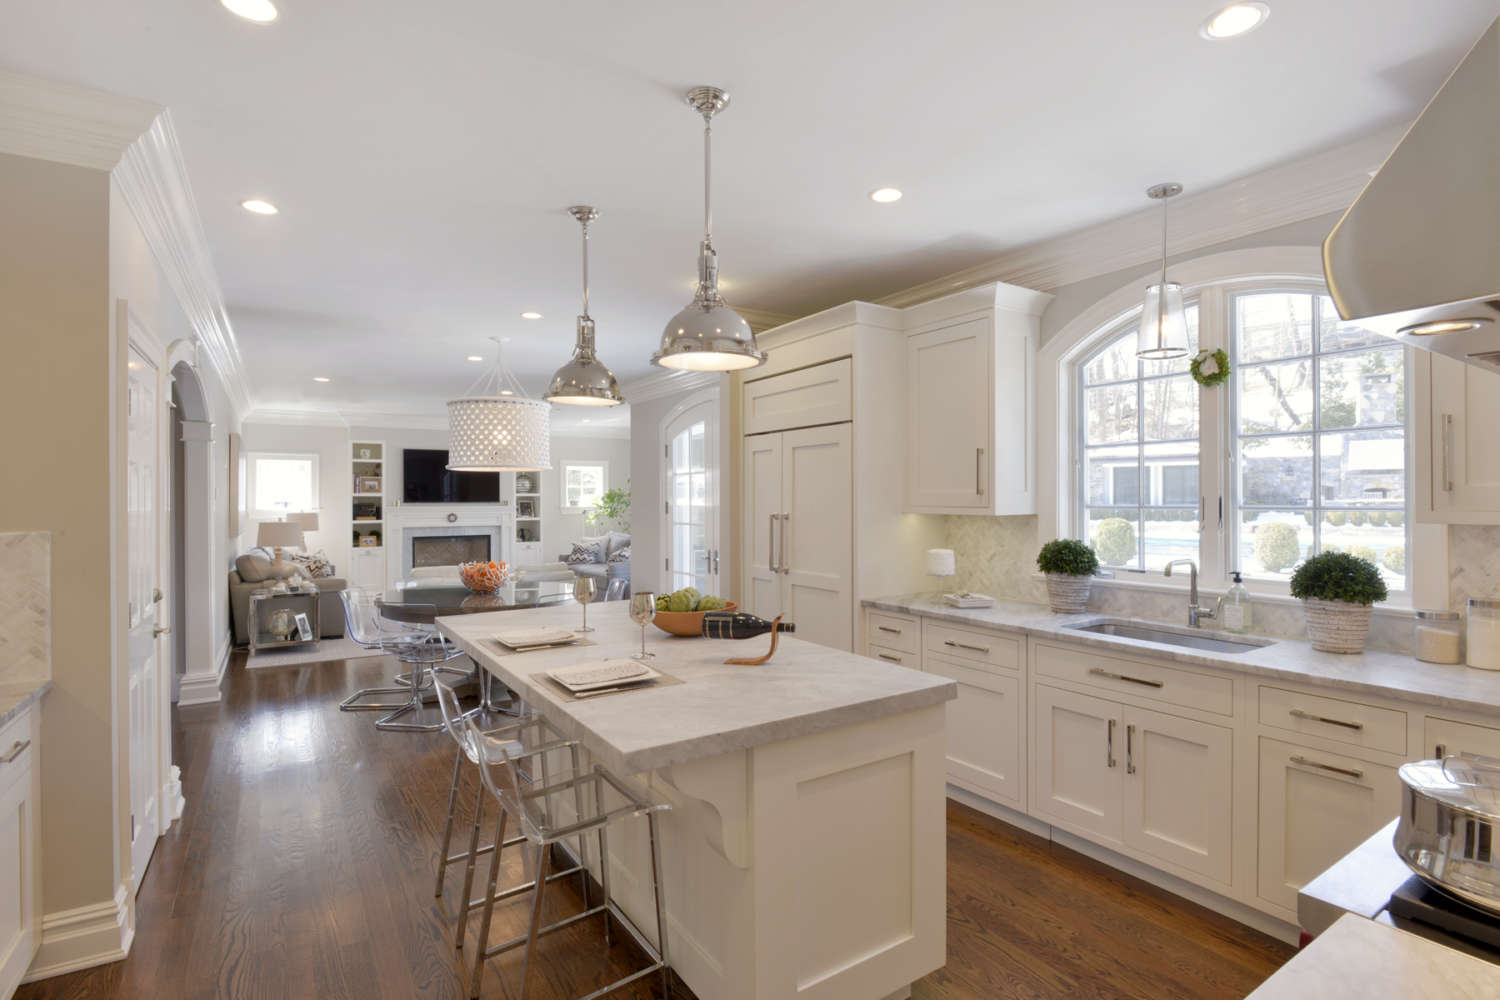 Bright kitchen with fully custom white painted Bilotta cabinets, light gray countertops and natural oak flooring opens into the living room. White painted kitchen island has seating and extra thick top. Designed by Linda Daniele of Bilotta Kitchens.